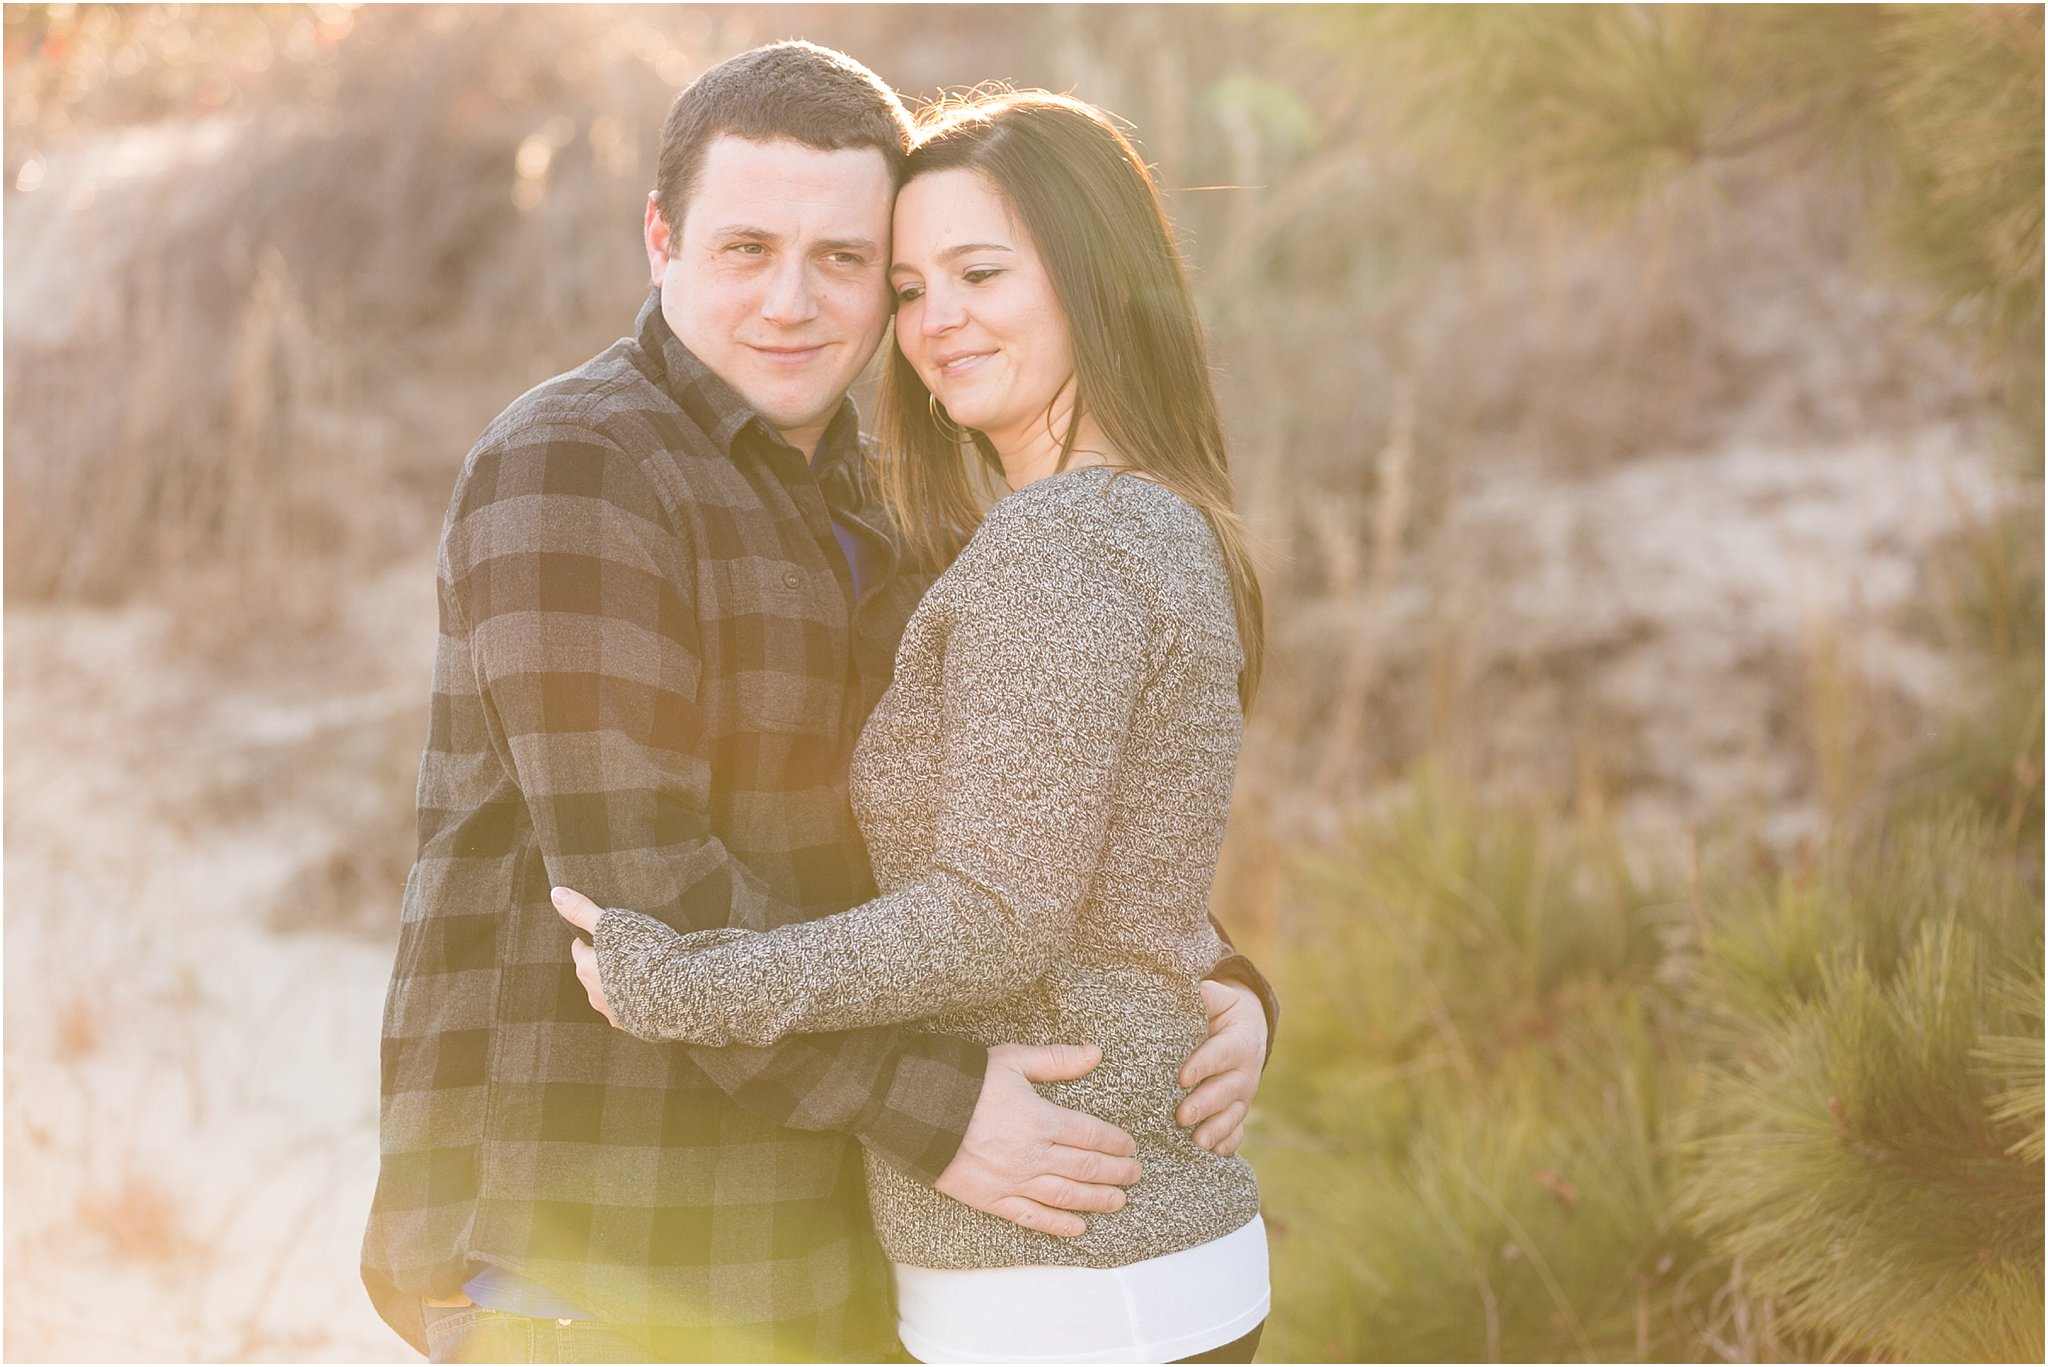 jessica_ryan_photography_winter_engagements_virginia_beach_oceanfront_virginia_0750